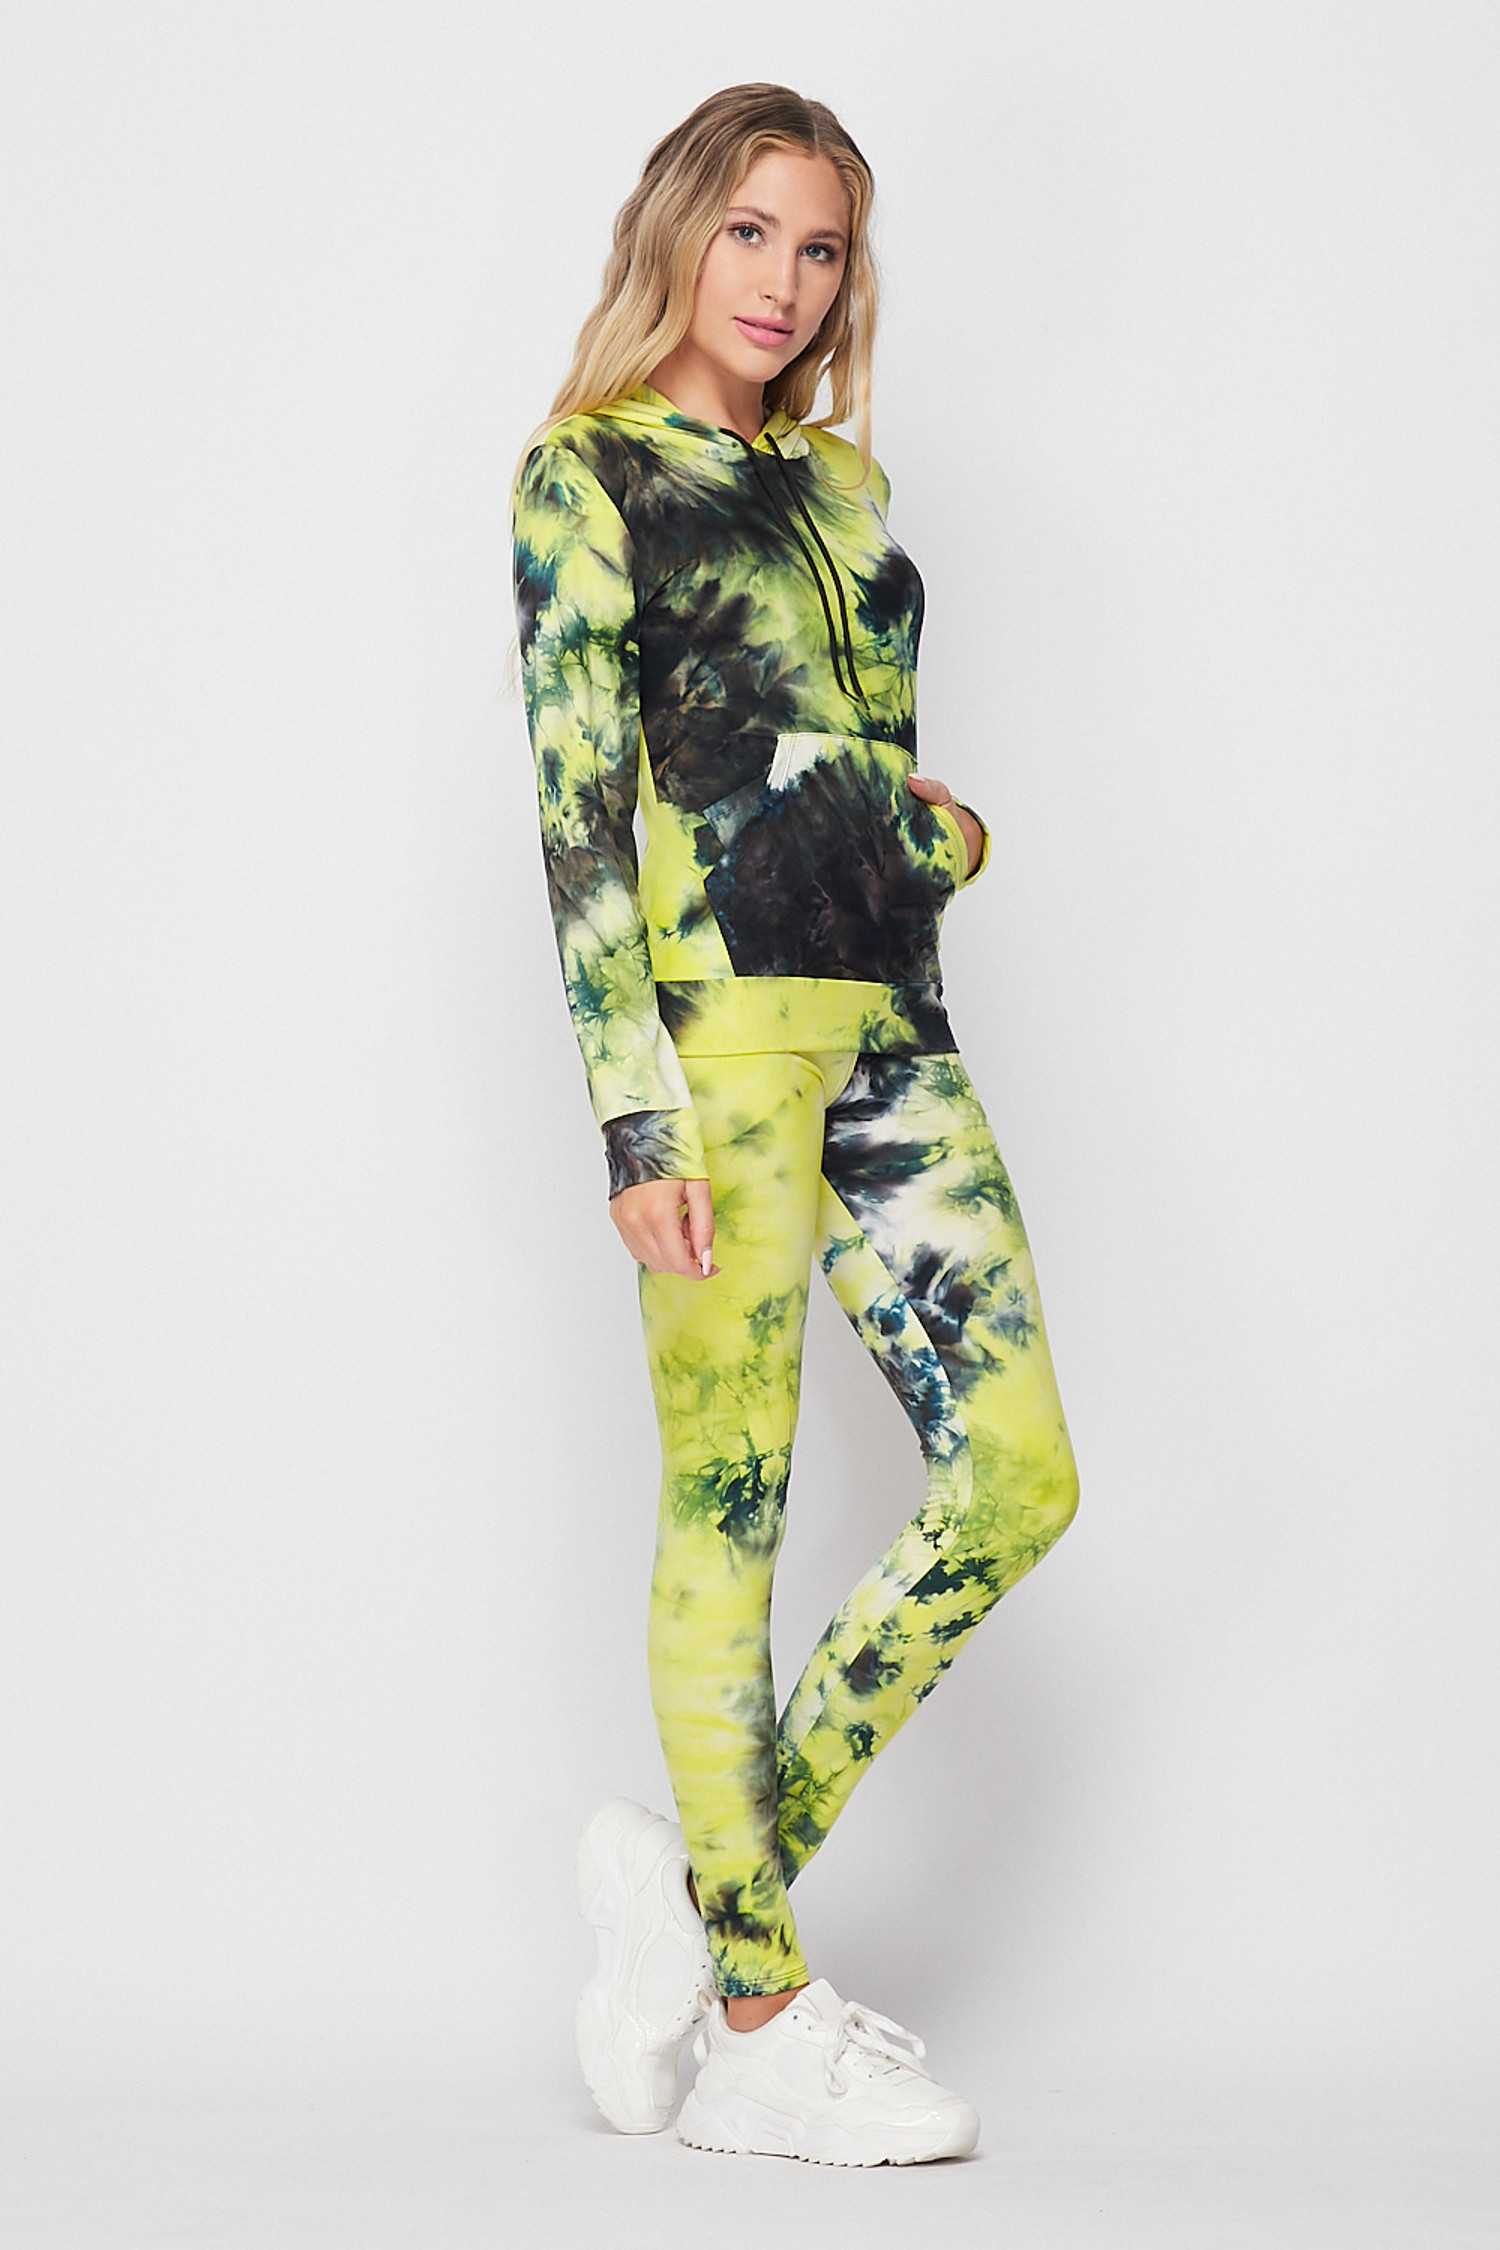 Right side image of Yellow Tie Dye 2 Piece Leggings and Hooded Jacket Set